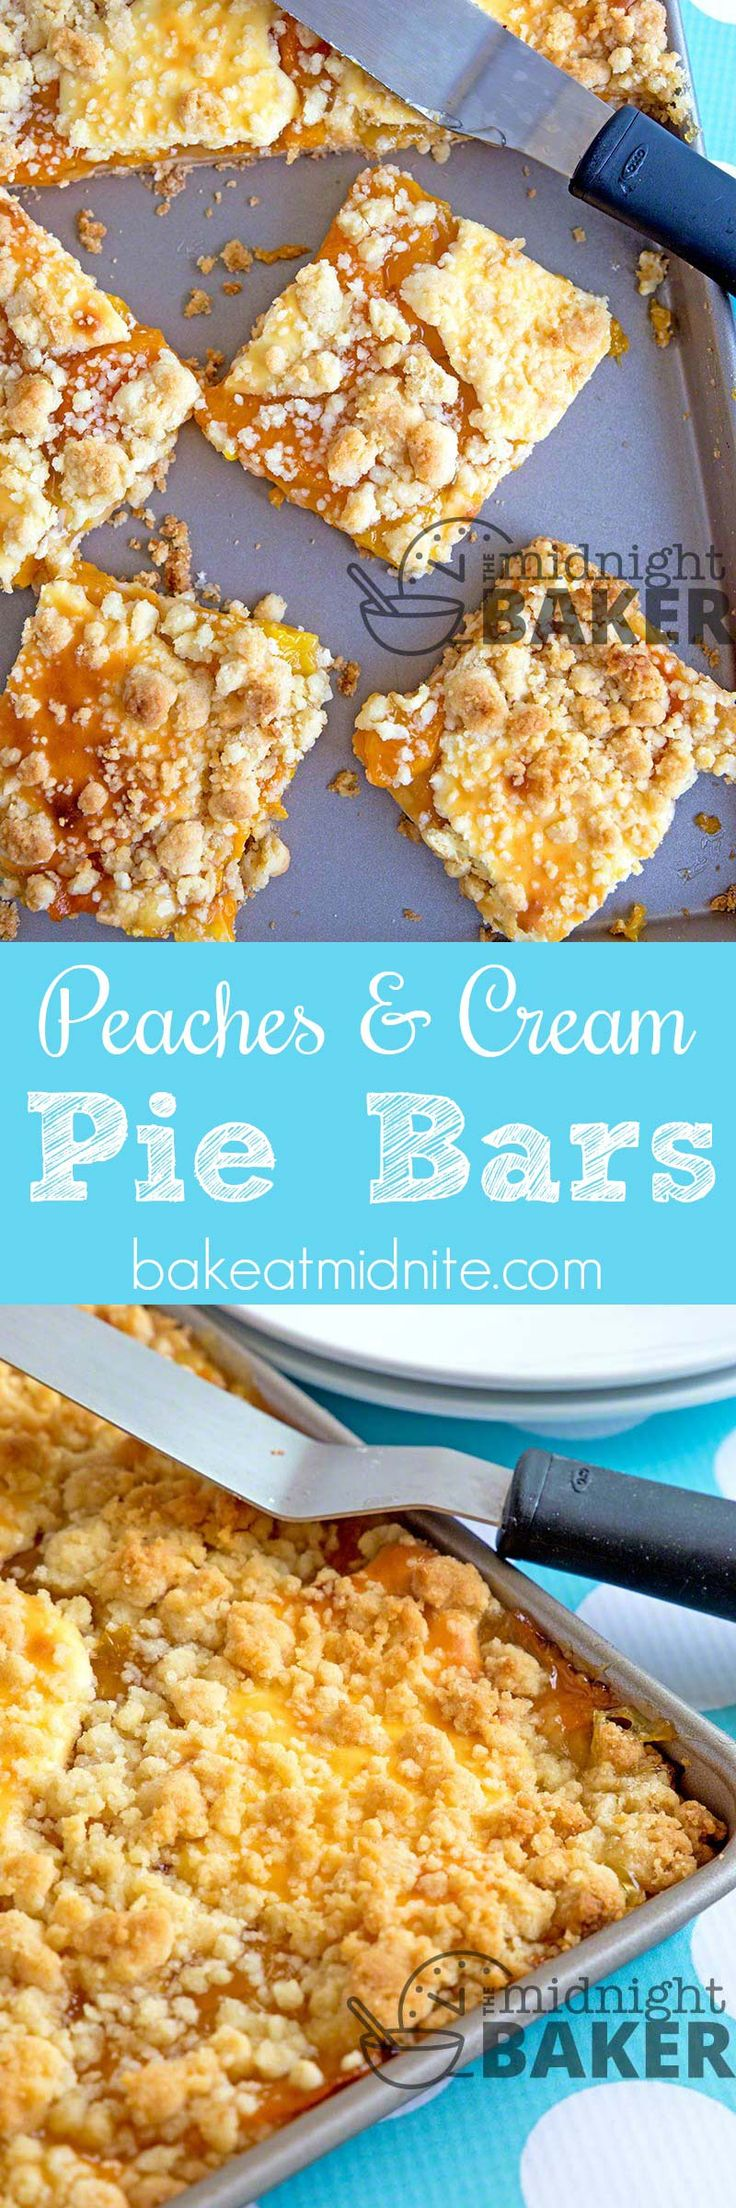 These peaches and cream pie bars are perfect for when you can't decide whether you want pie or cheesecake! Pie Or Cheesecake If you want pie, but you're hankering for cheesecake too, these peaches and cream pie bars are just what the doctor ordered! You get a little bit of both here with a great...Read More »